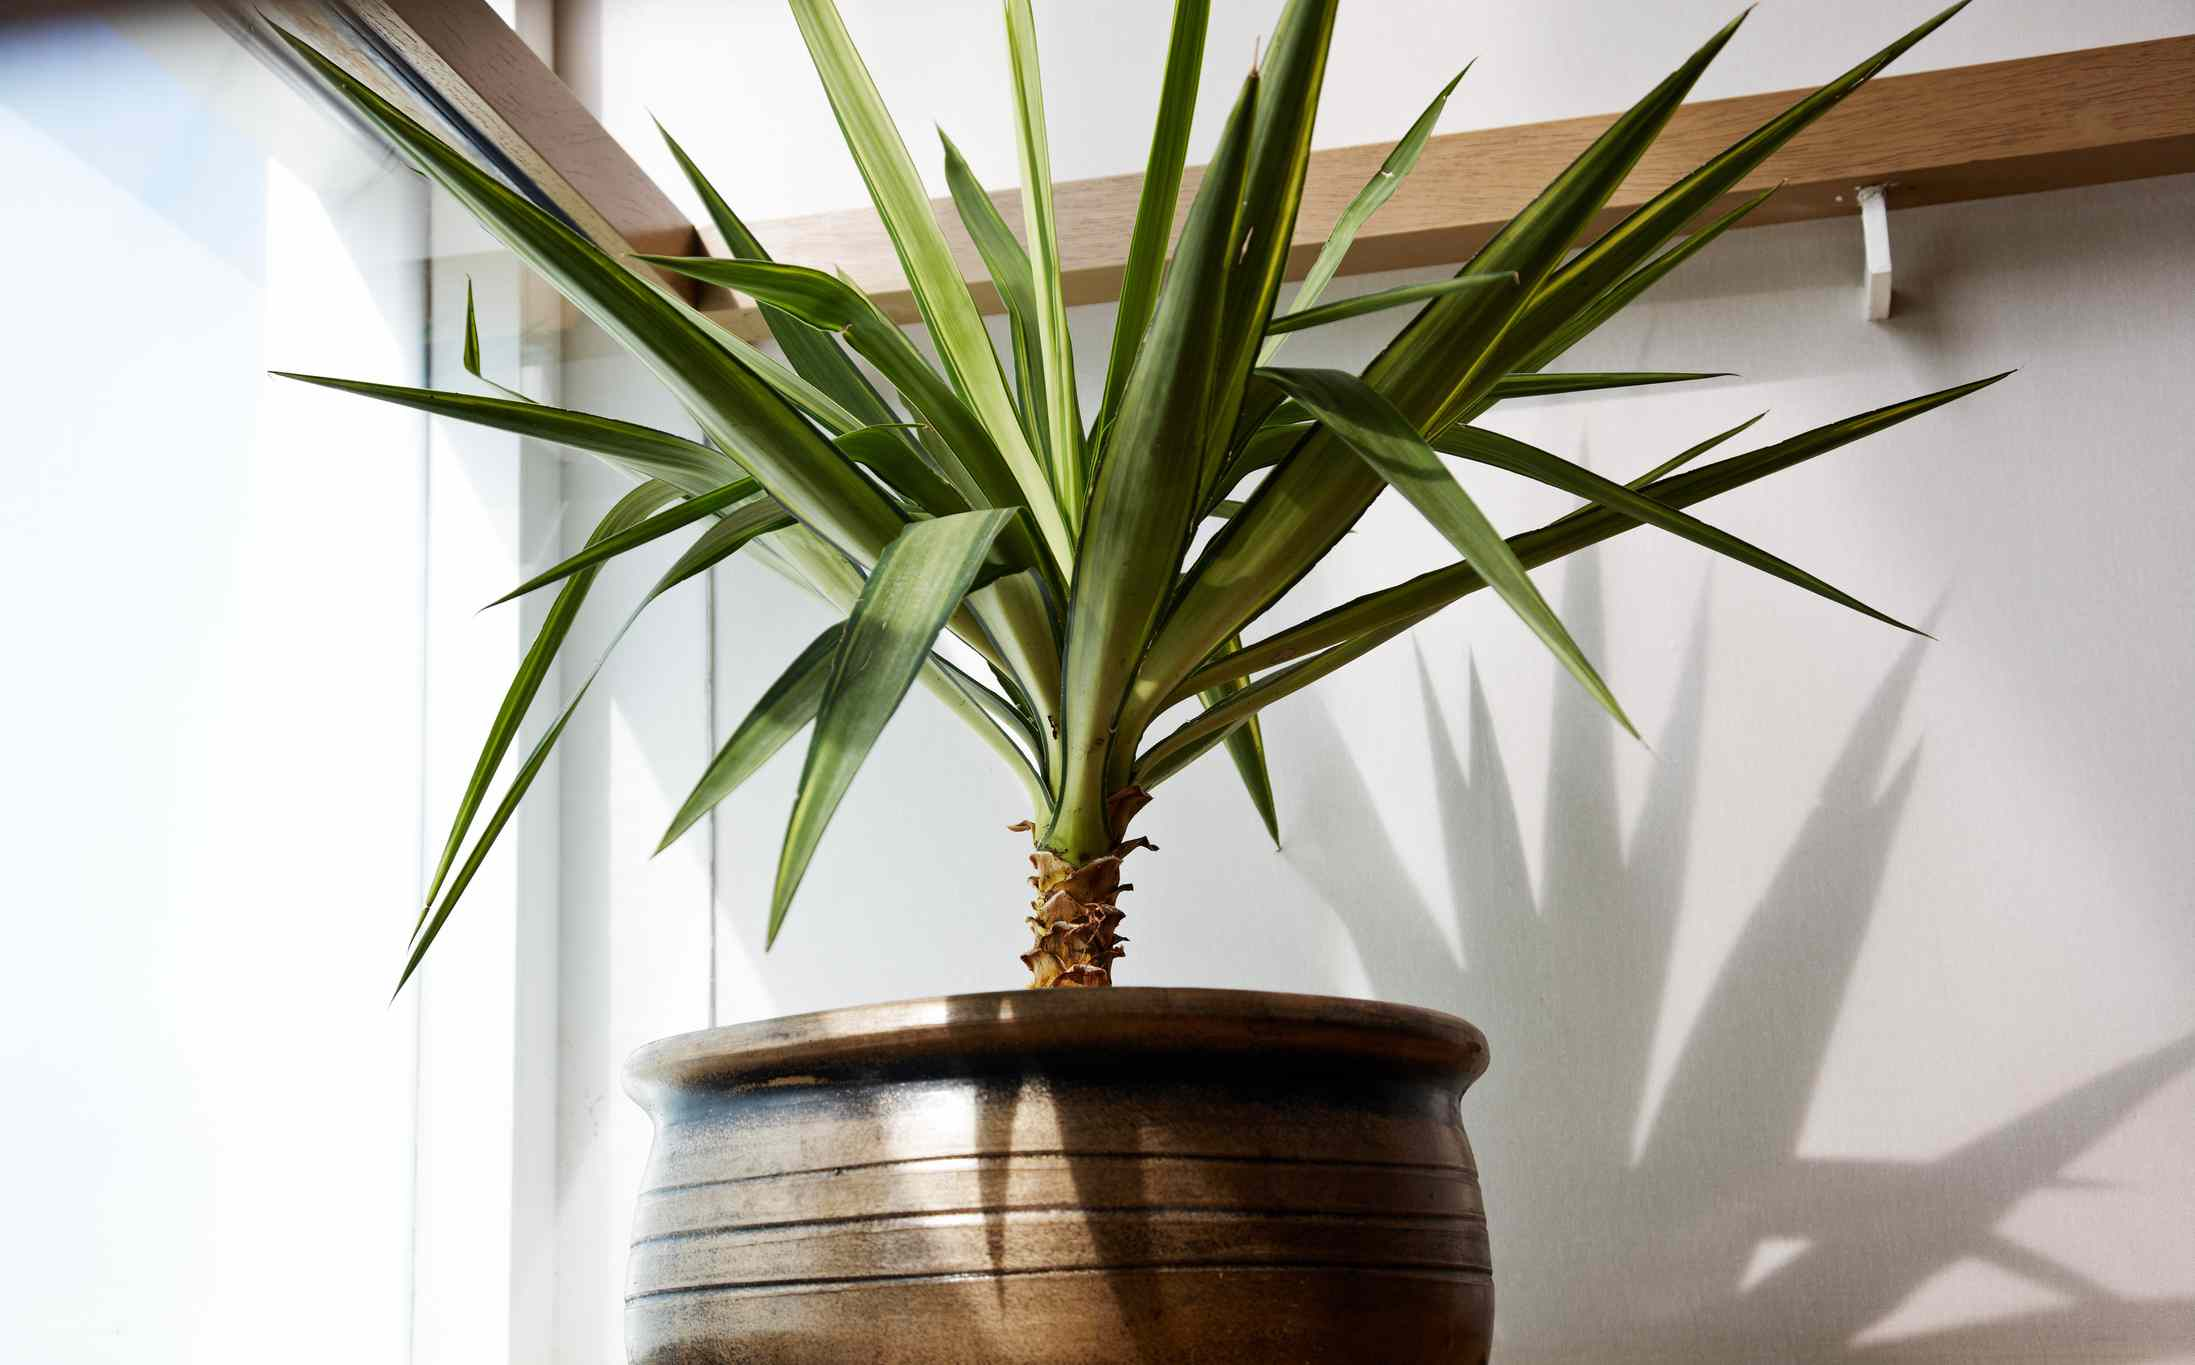 Small potted yucca growing in indirect light